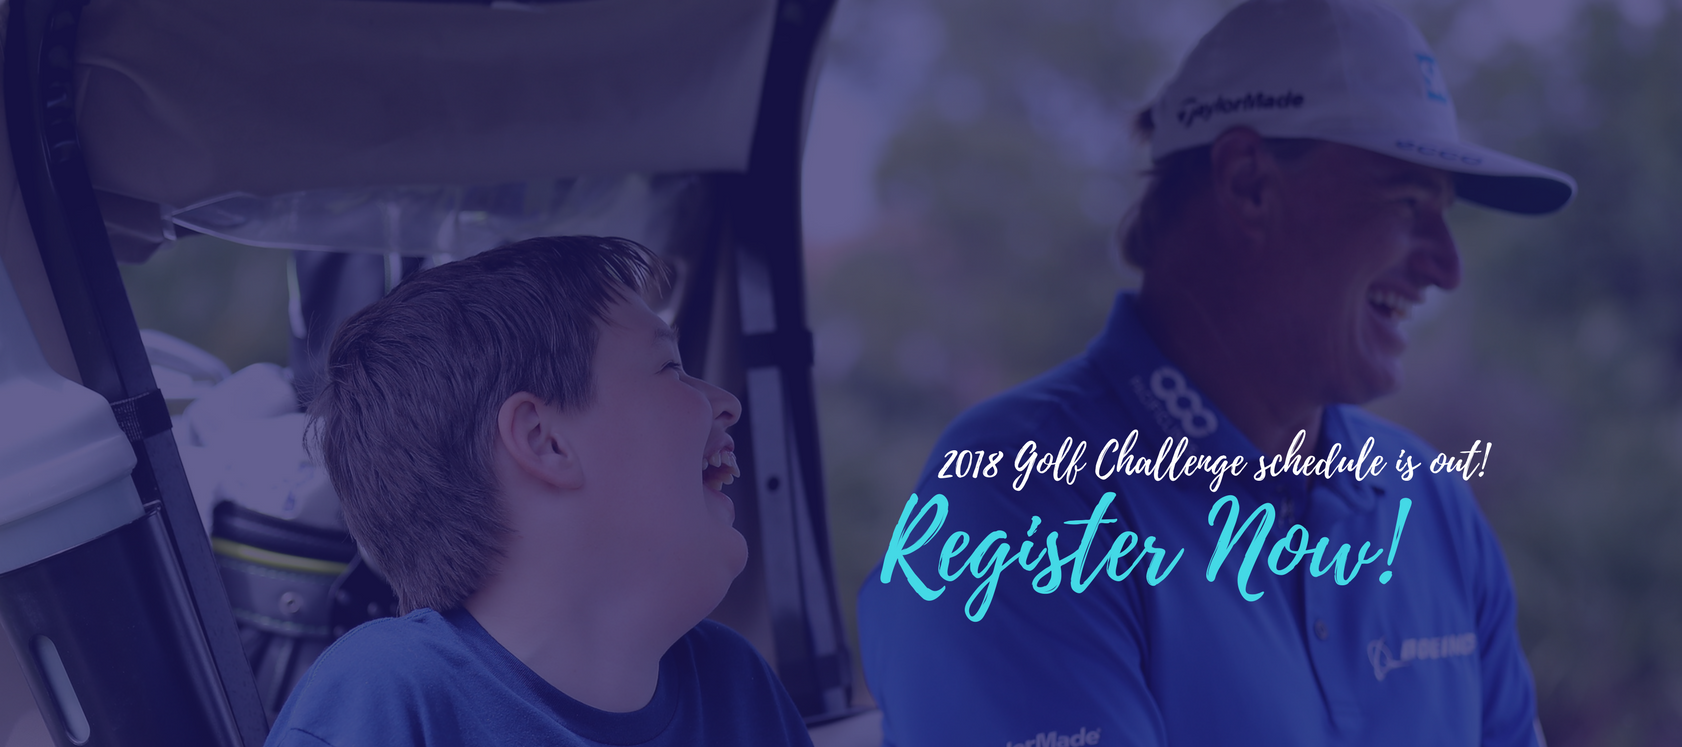 Sign Up Now!, 2018 Golf Challenge